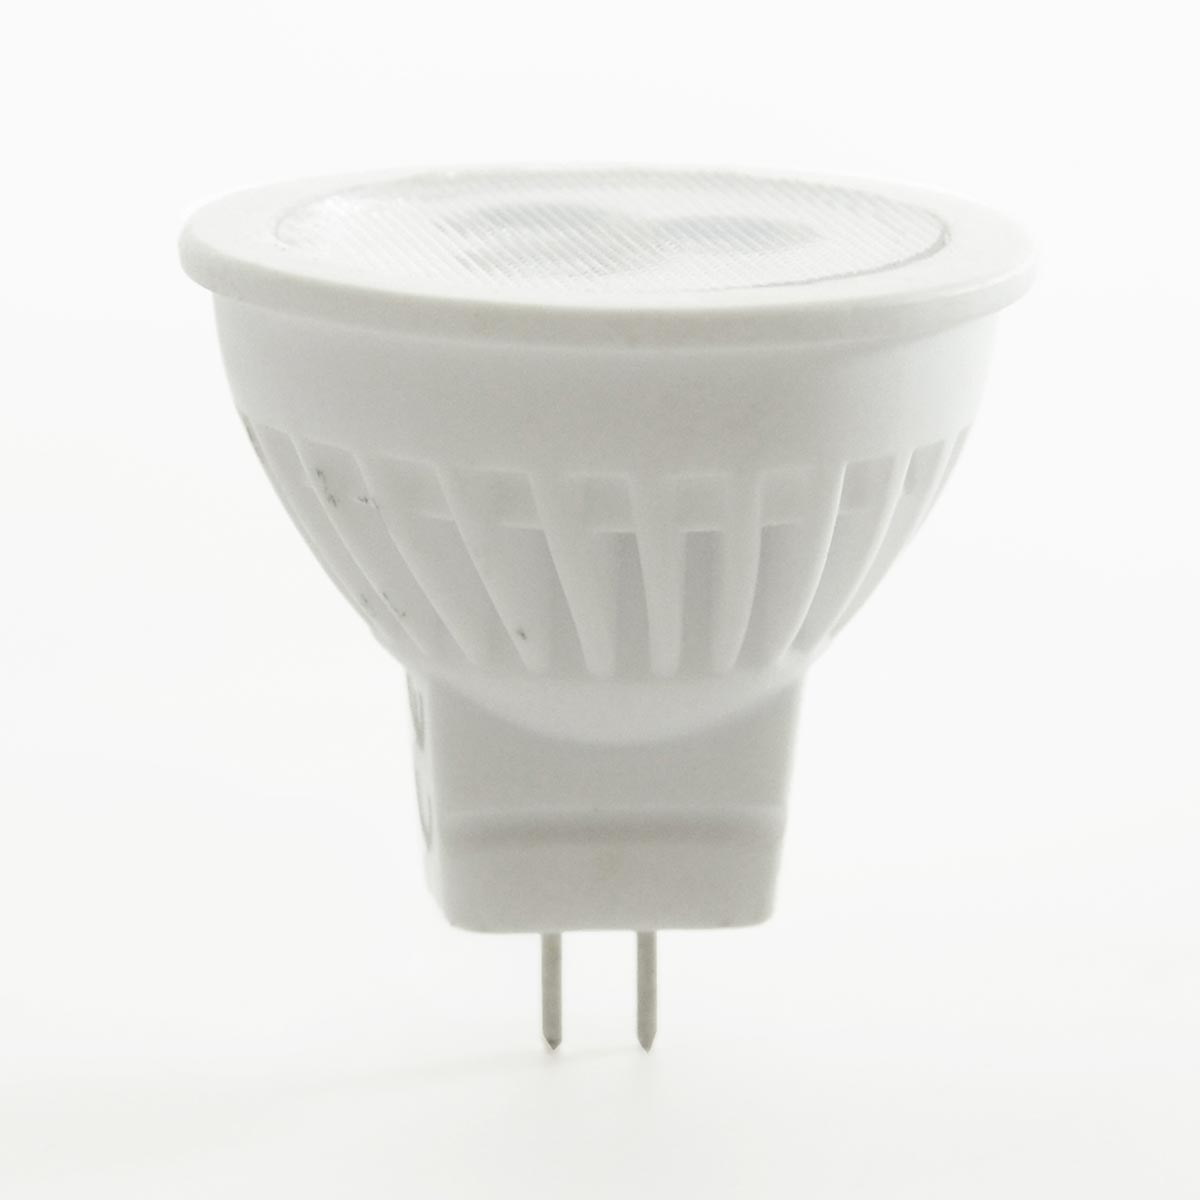 LED Spot GU4 MR11 12V 3W Neutralweiss 255lm 38°